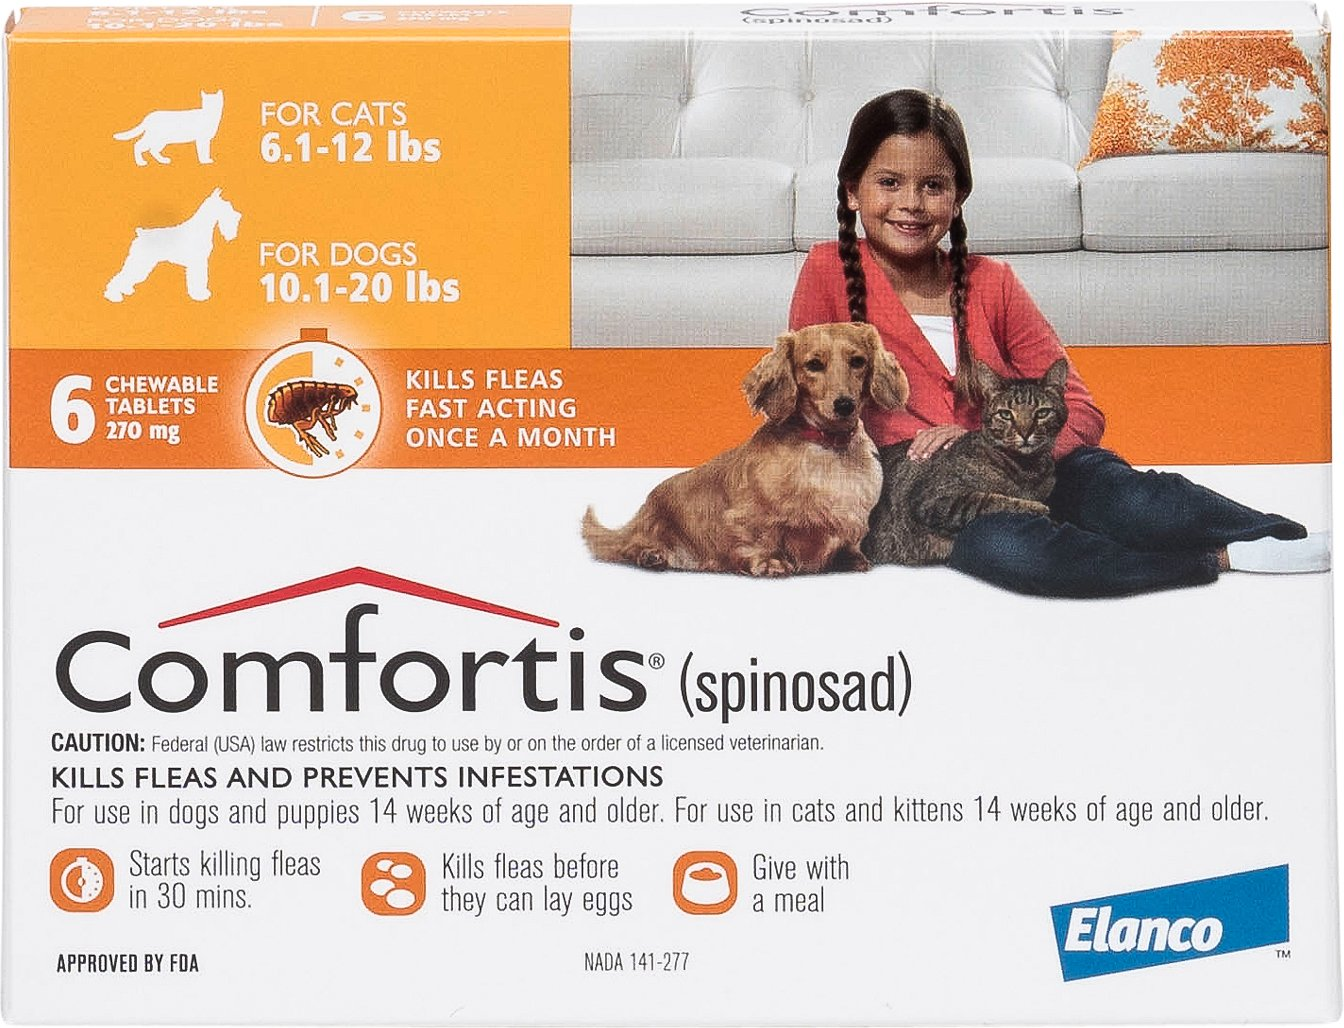 Tempting Cats Without A Vet Prescription Dogs Lbs Cats Comfortis Without A Vet Prescription Usa Comfortis Video Comfortis Chewable Tablets houzz-03 Comfortis Without A Vet Prescription